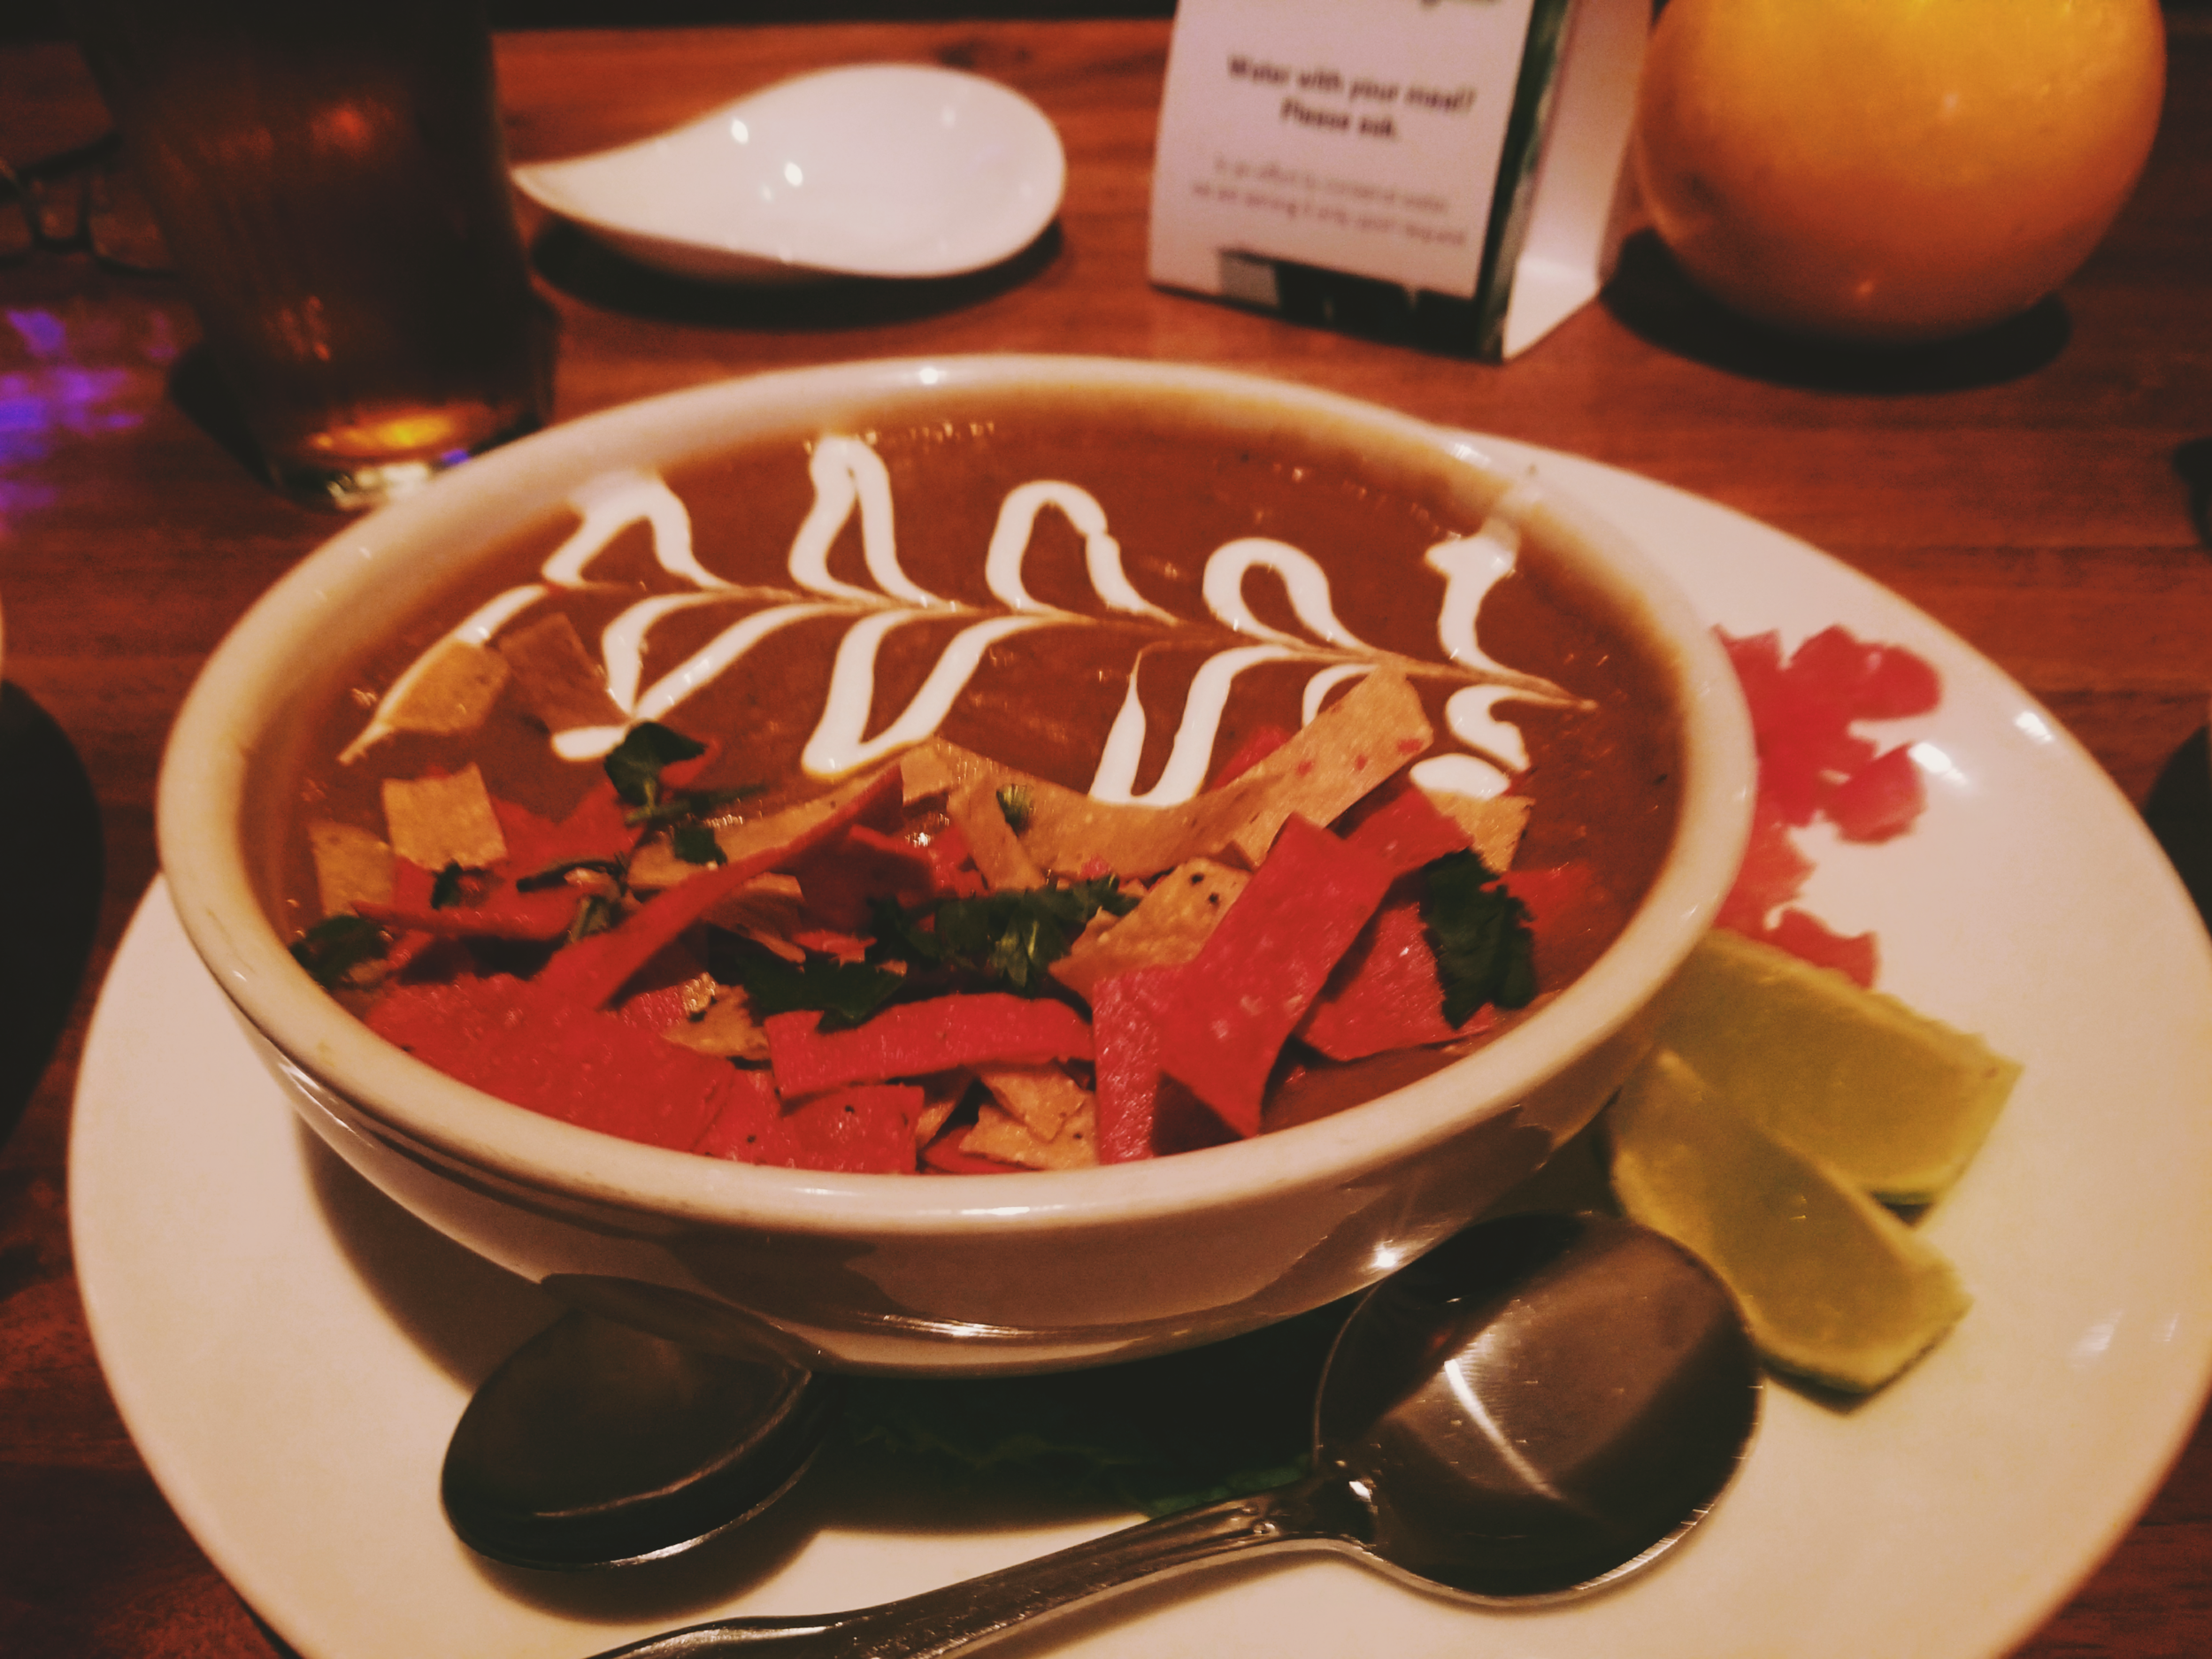 The Sopa Azteca, recommended to us by our Airbnb hosts, and my favorite part of the meal